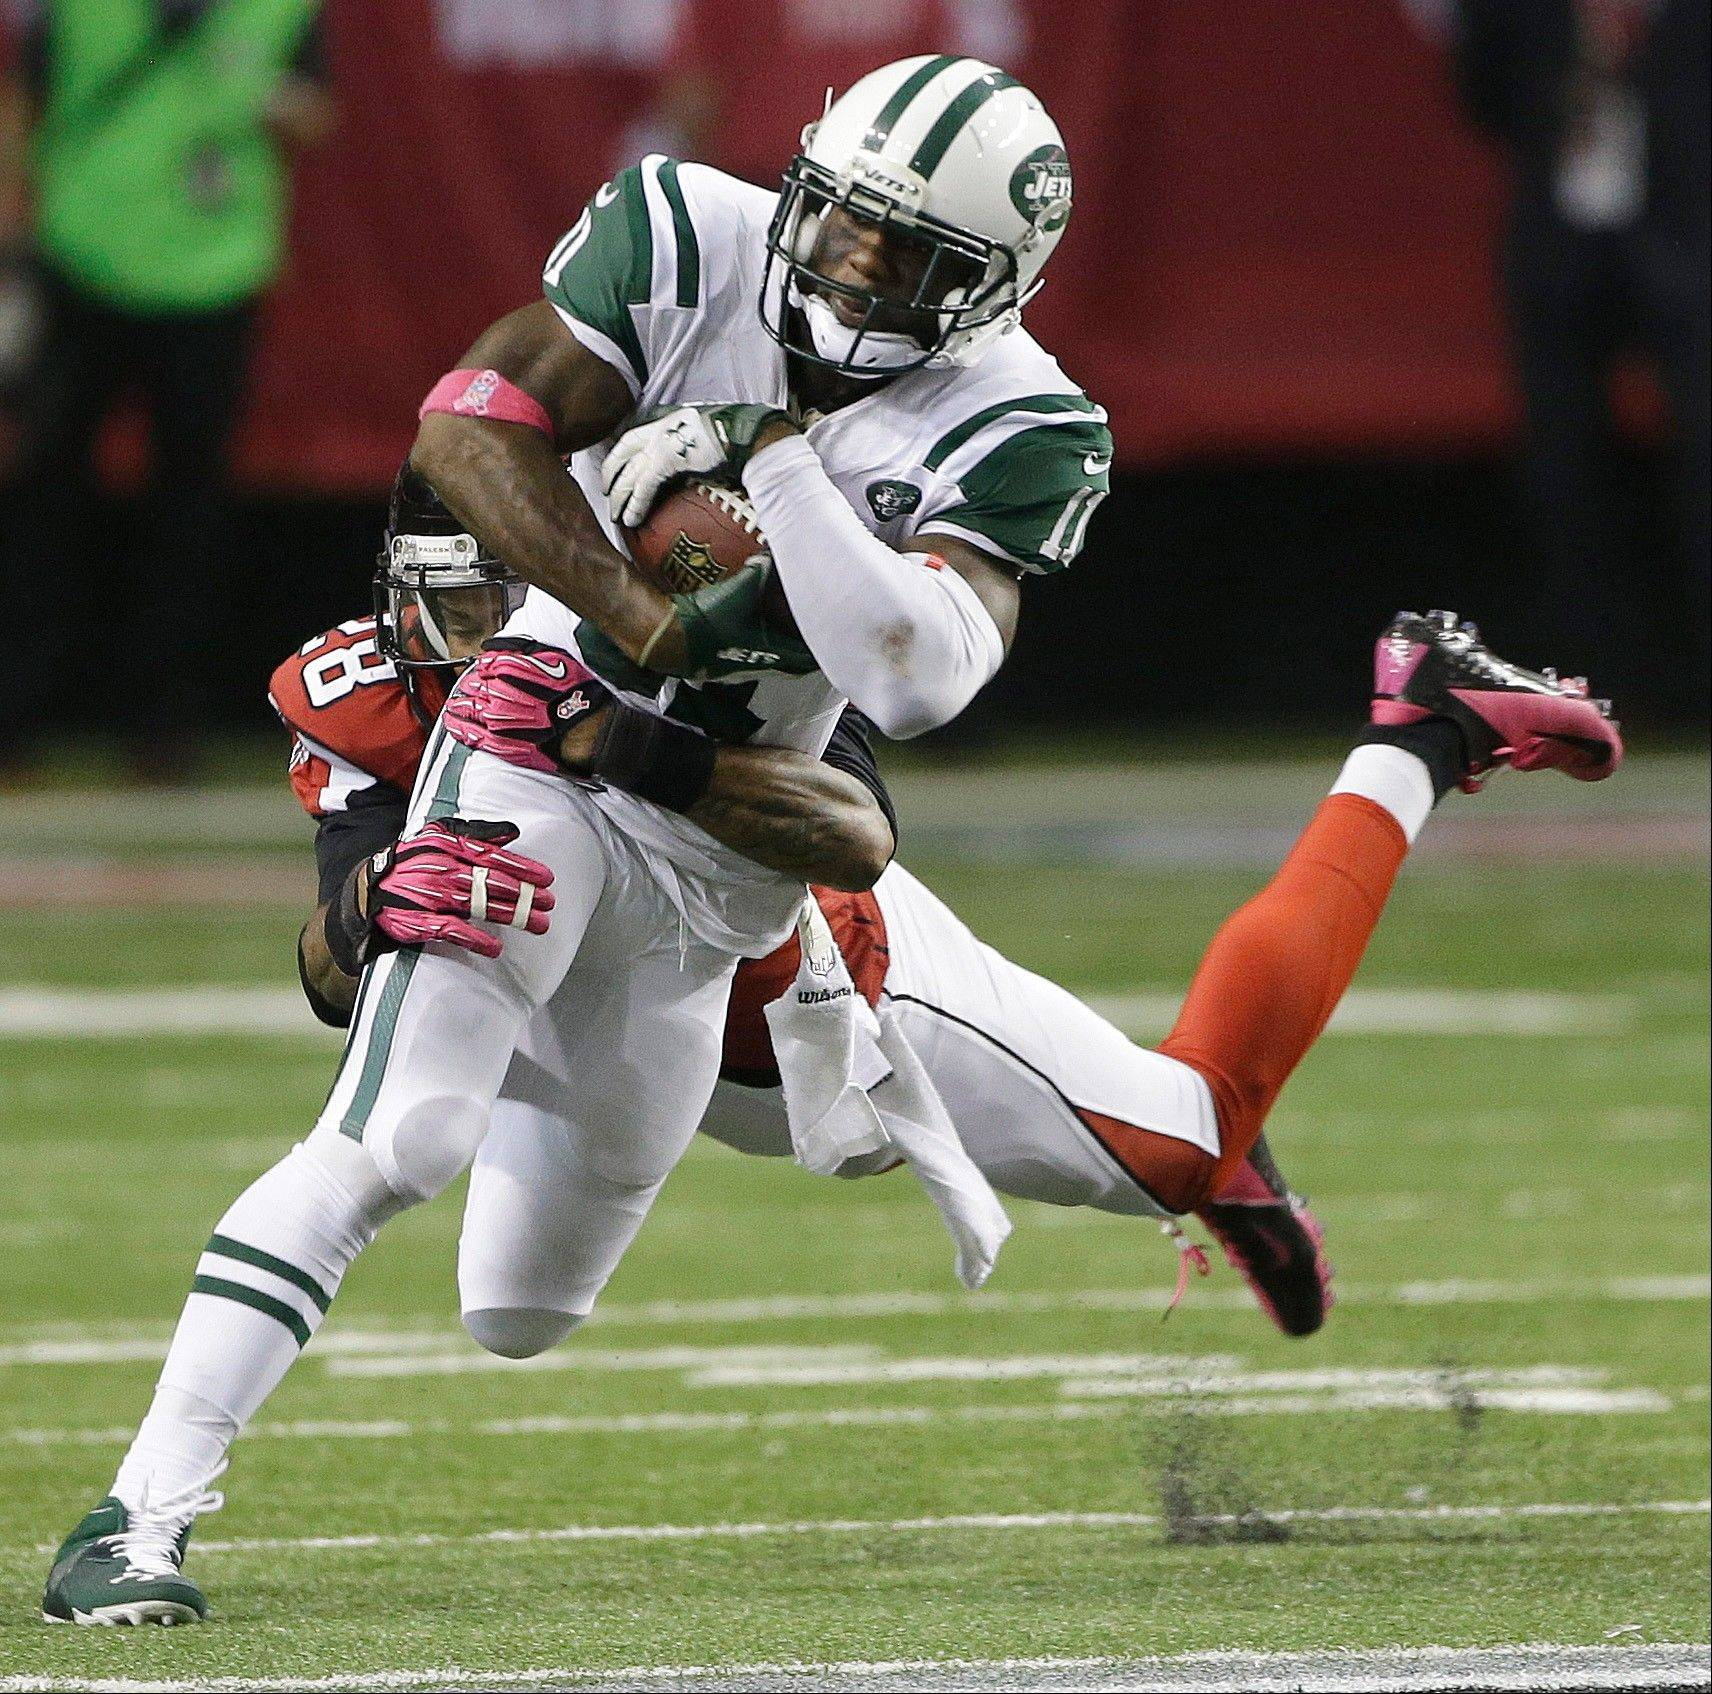 Falcons free safety Thomas DeCoud tackles Jets wide receiver Jeremy Kerley during the second half of Monday night's game in Atlanta.